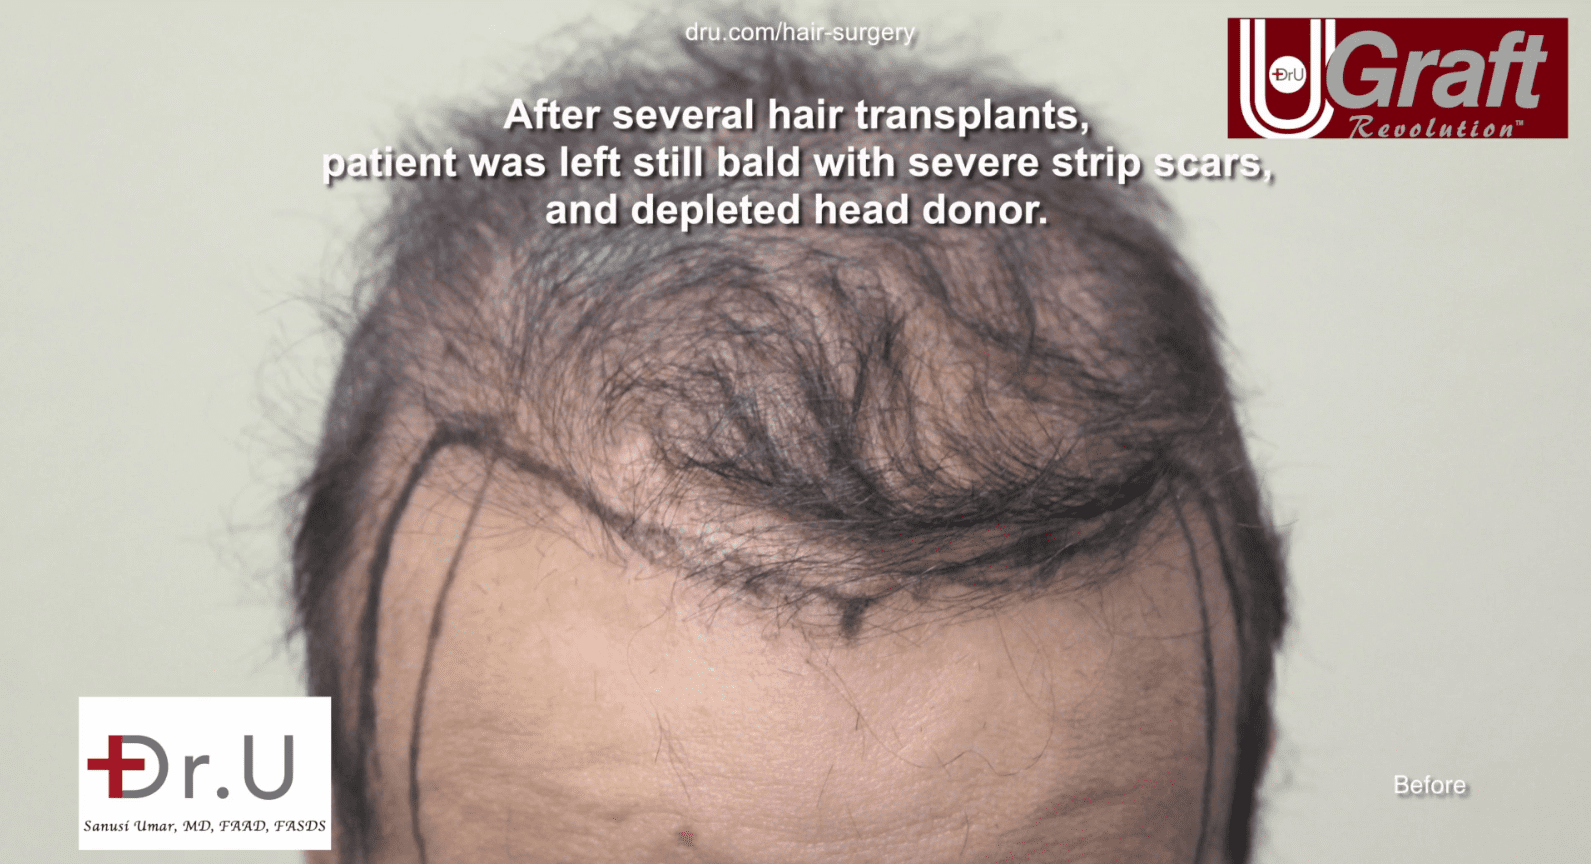 This patients hairline was completely undefined before his hair transplant with Dr. U.